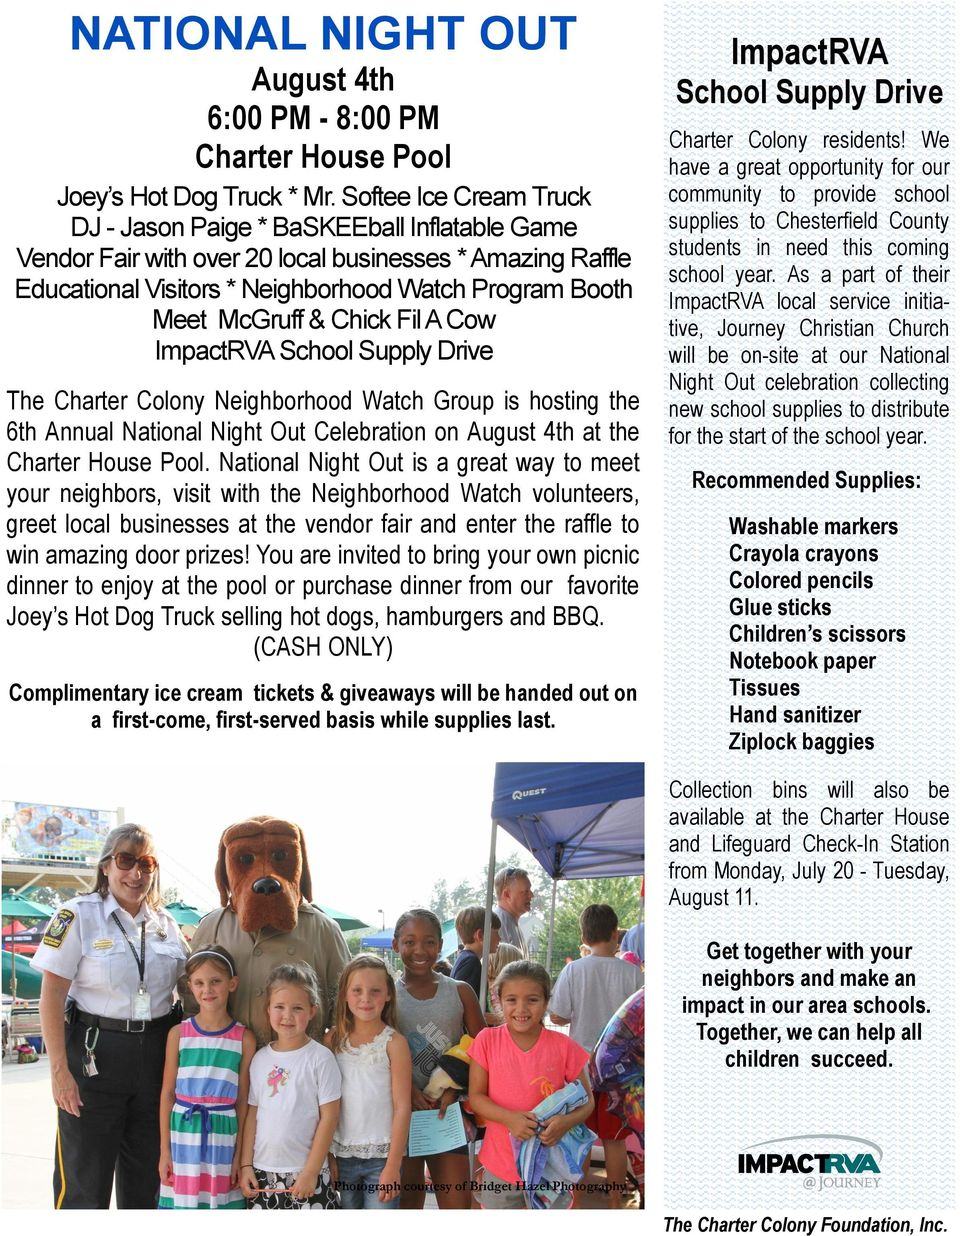 Chick Fil A Cow ImpactRVA School Supply Drive The Charter Colony Neighborhood Watch Group is hosting the 6th Annual National Night Out Celebration on August 4th at the Charter House Pool.